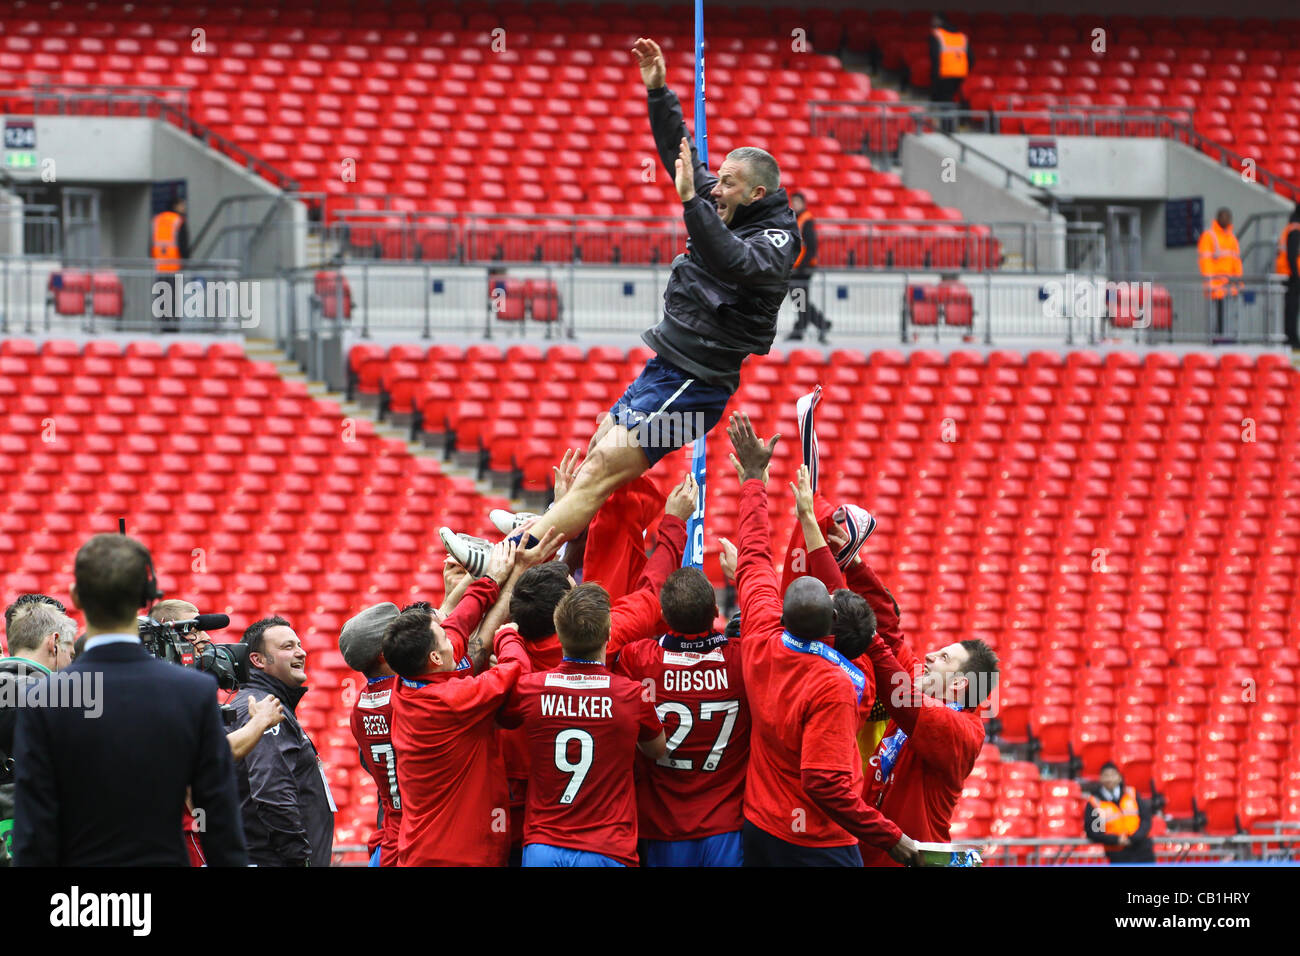 LONDON, ENGLAND - MAY 20: 2011-12 York City celebrate with their manager, Gary Mills being tossed into the air after - Stock Image